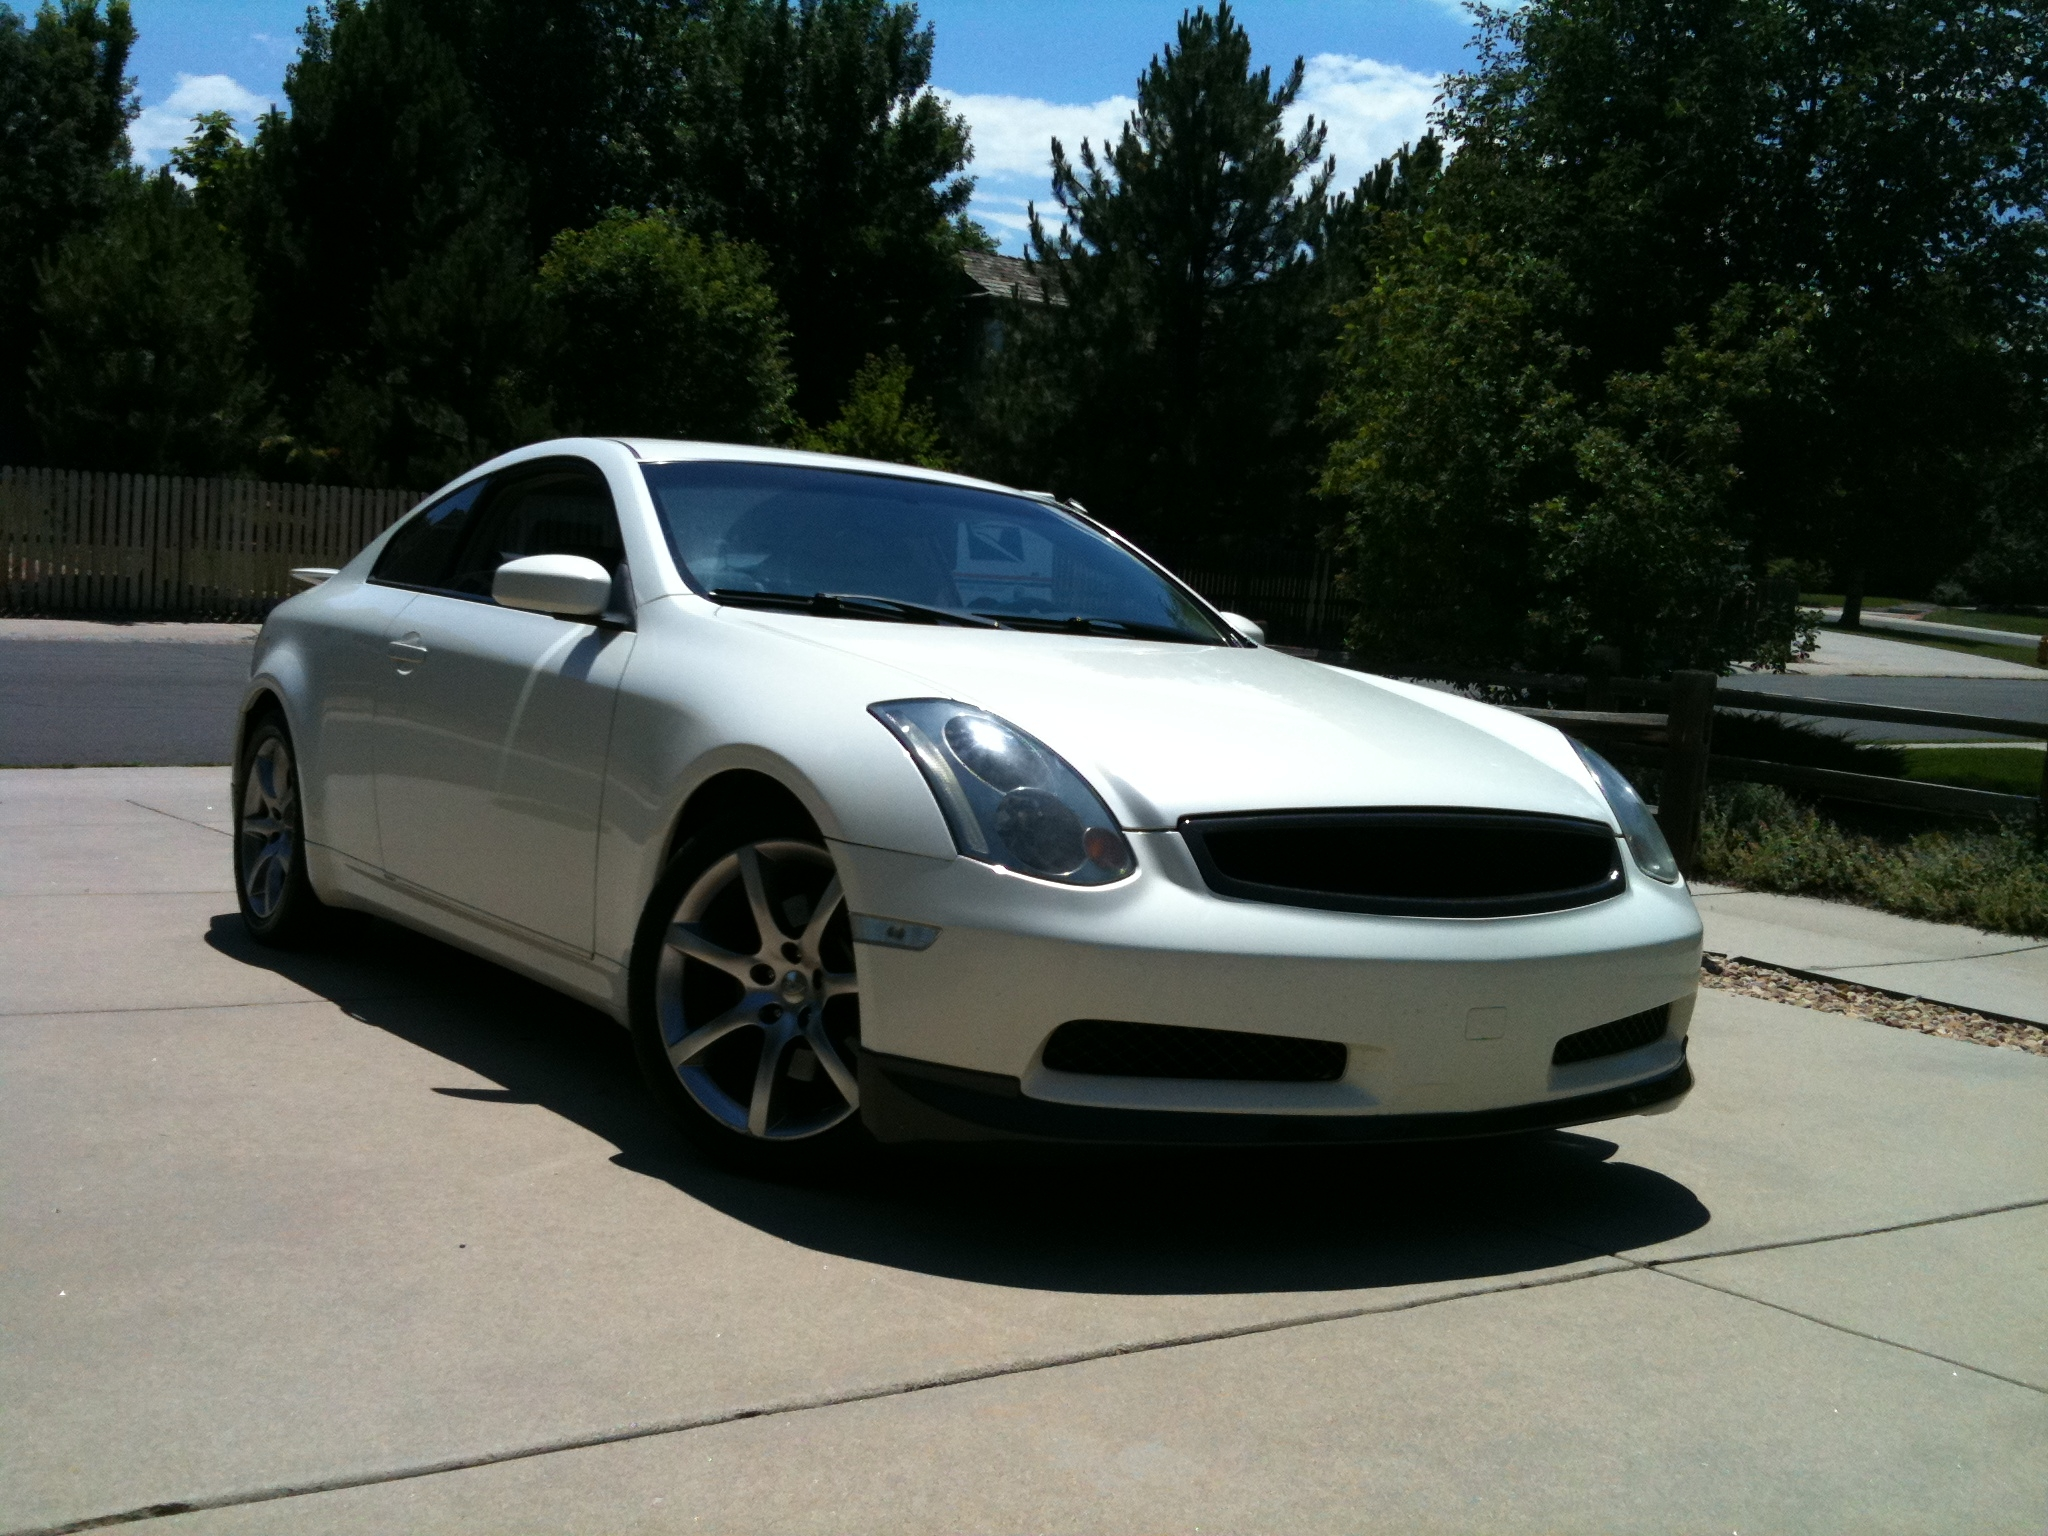 thatattguy 39 s 2005 infiniti g g35 coupe 2d in parker co. Black Bedroom Furniture Sets. Home Design Ideas